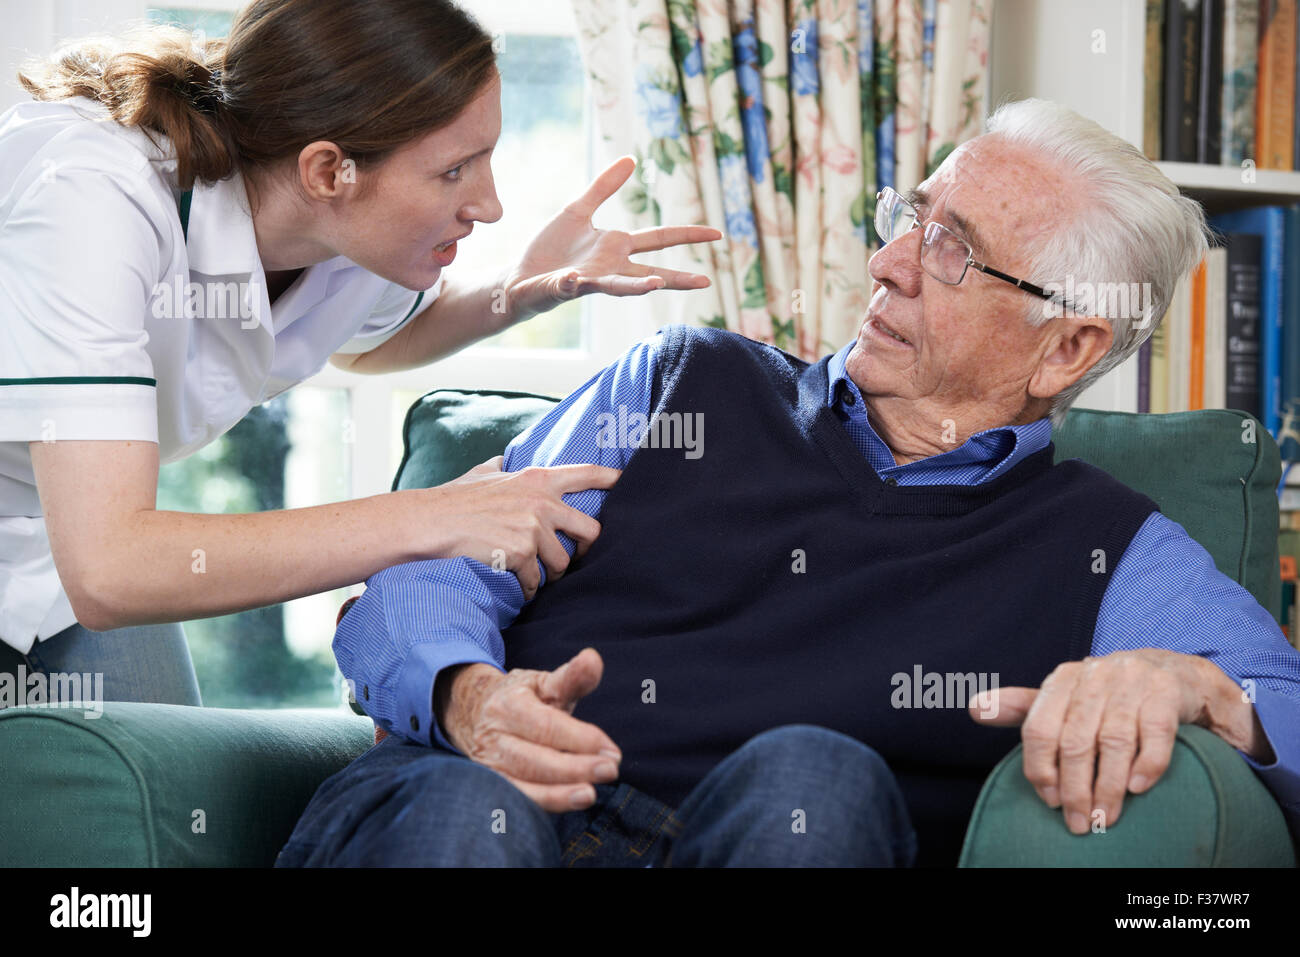 Care Worker Mistreating Senior Man At Home - Stock Image